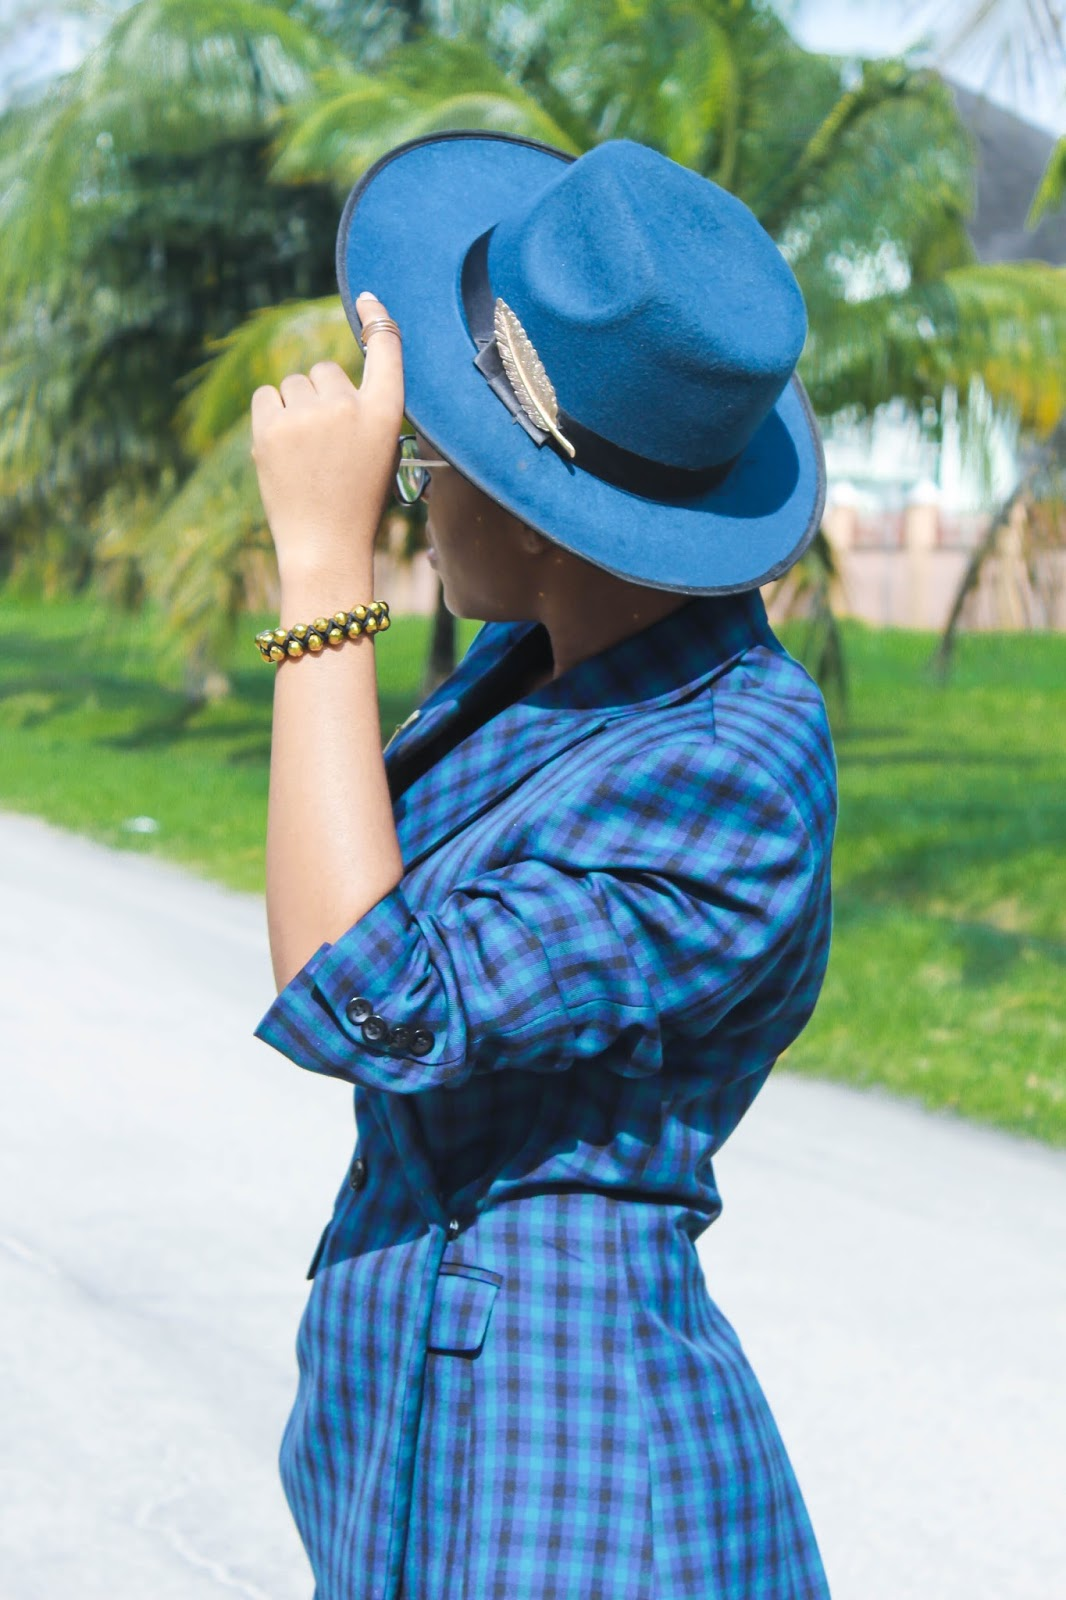 pin hats, hat brooch, how to use a hat pin, pin/brooch on fedora hat